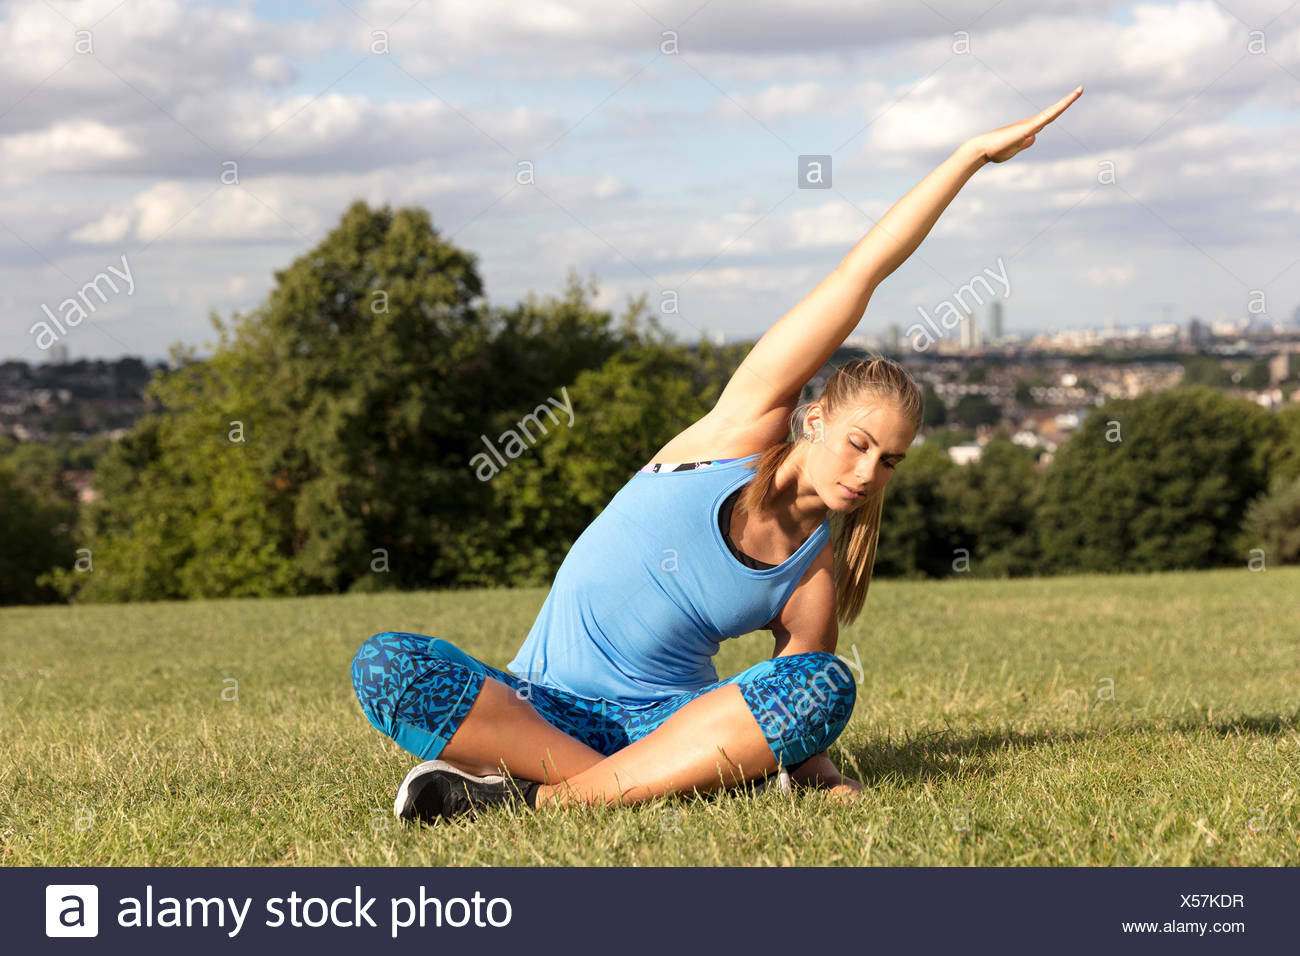 Young woman practicing yoga in park, sitting cross legged bending sideway - Stock Image